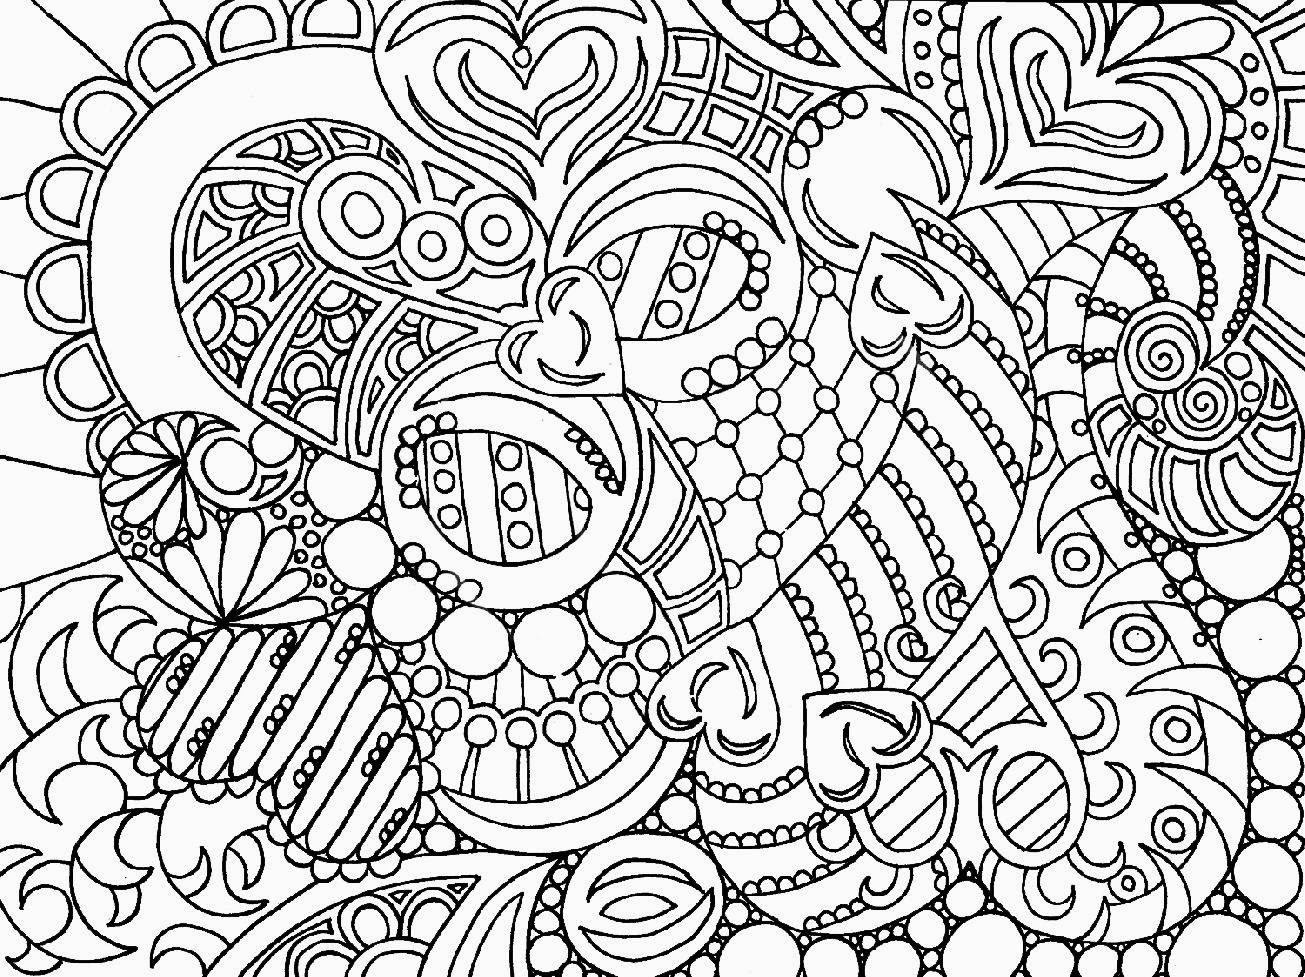 Best ideas about Free Printable Adult Coloring Pages . Save or Pin Adult Coloring Sheets Now.